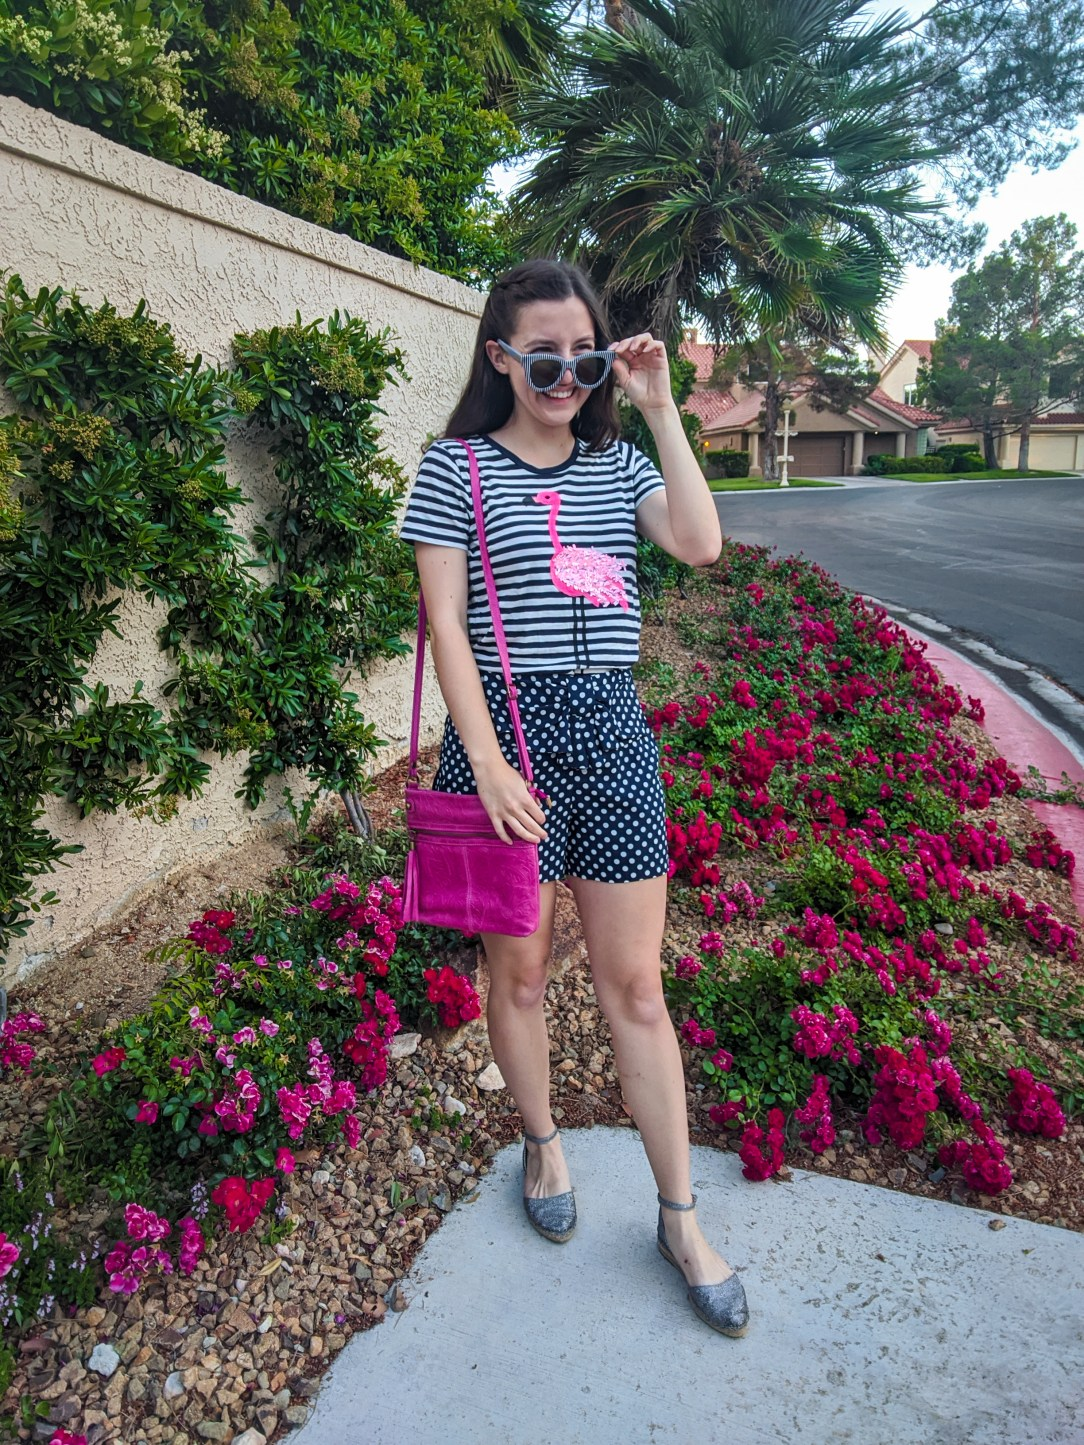 how to pattern mix, how to print mix, mixing patterns, polka dots and stripes